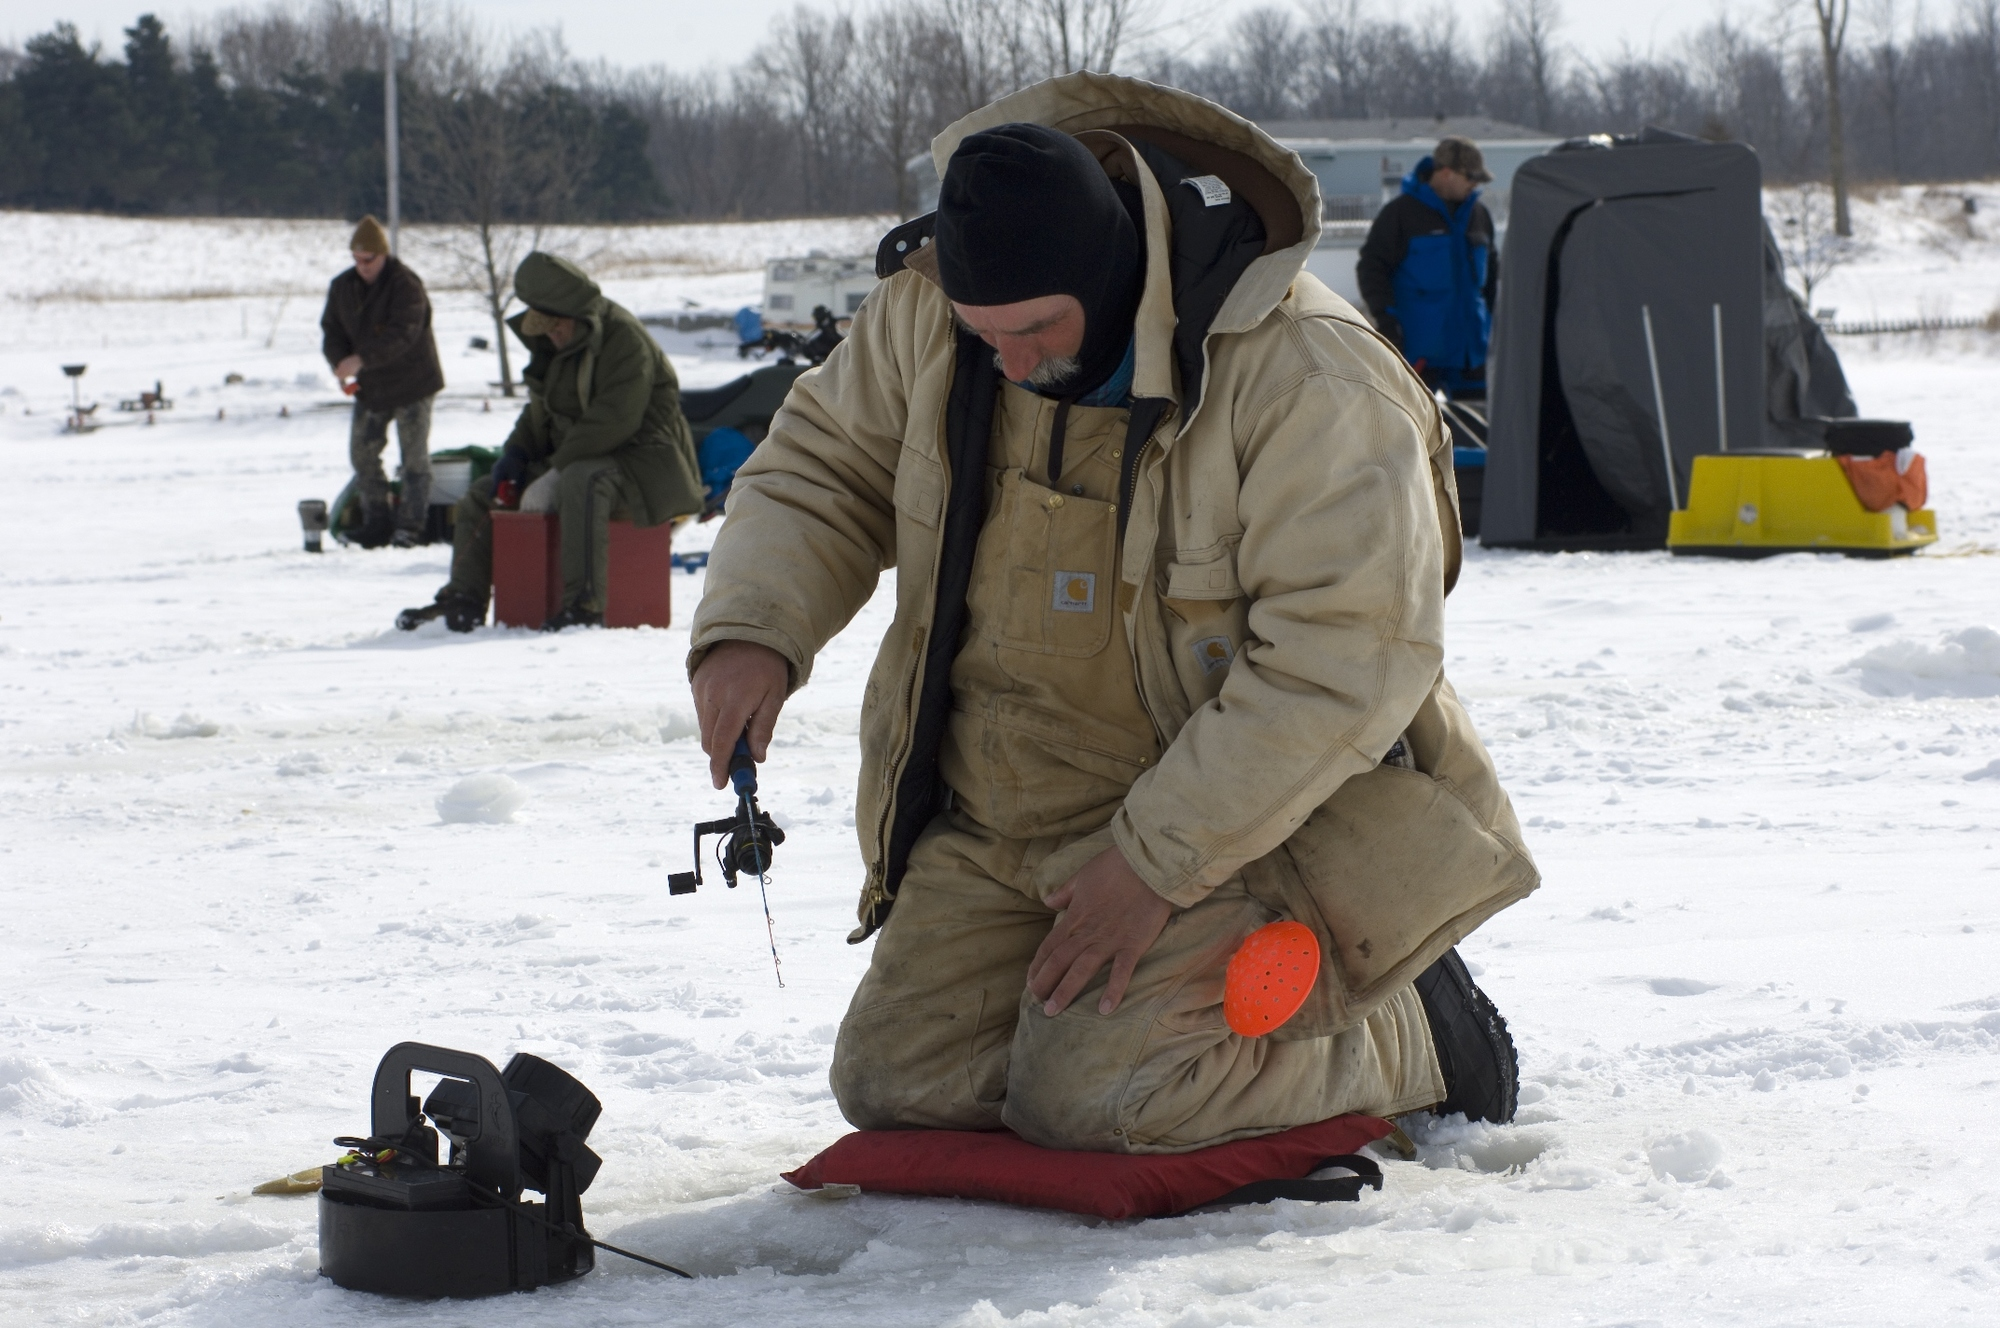 A group of anglers enjoying a day ice fishing in Michigan.